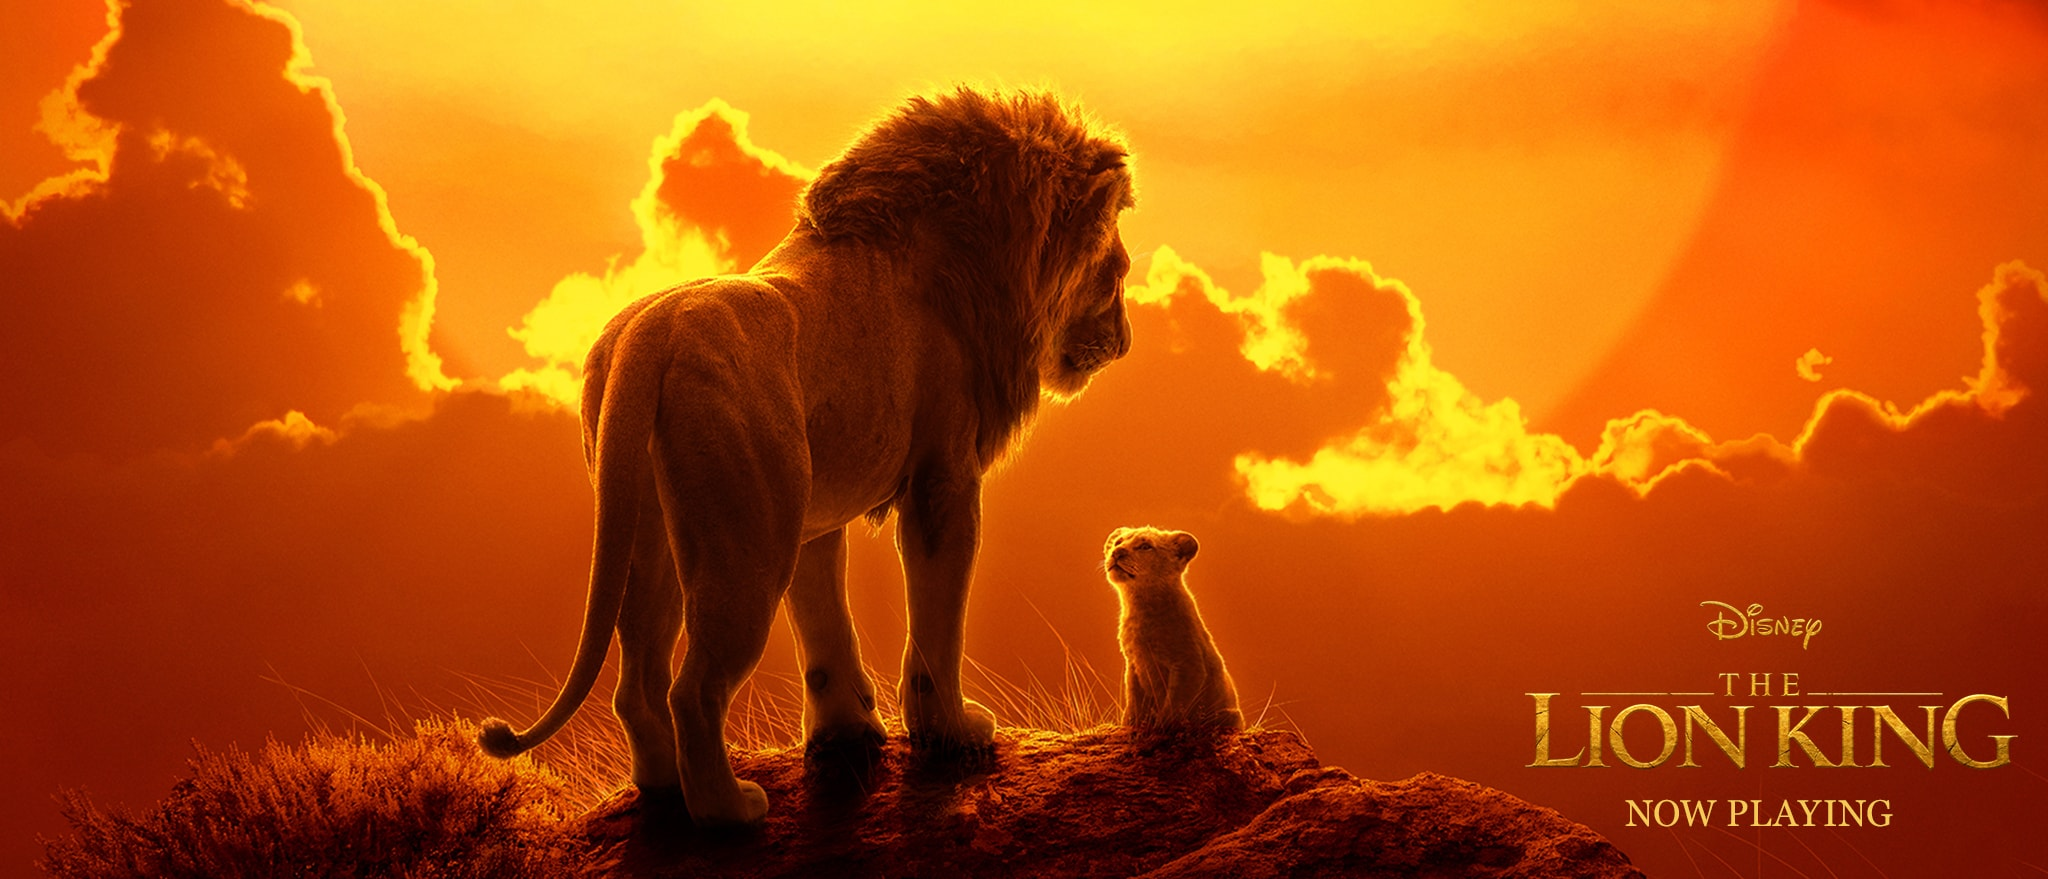 b_thelionking2019_header_nowplaying_1809